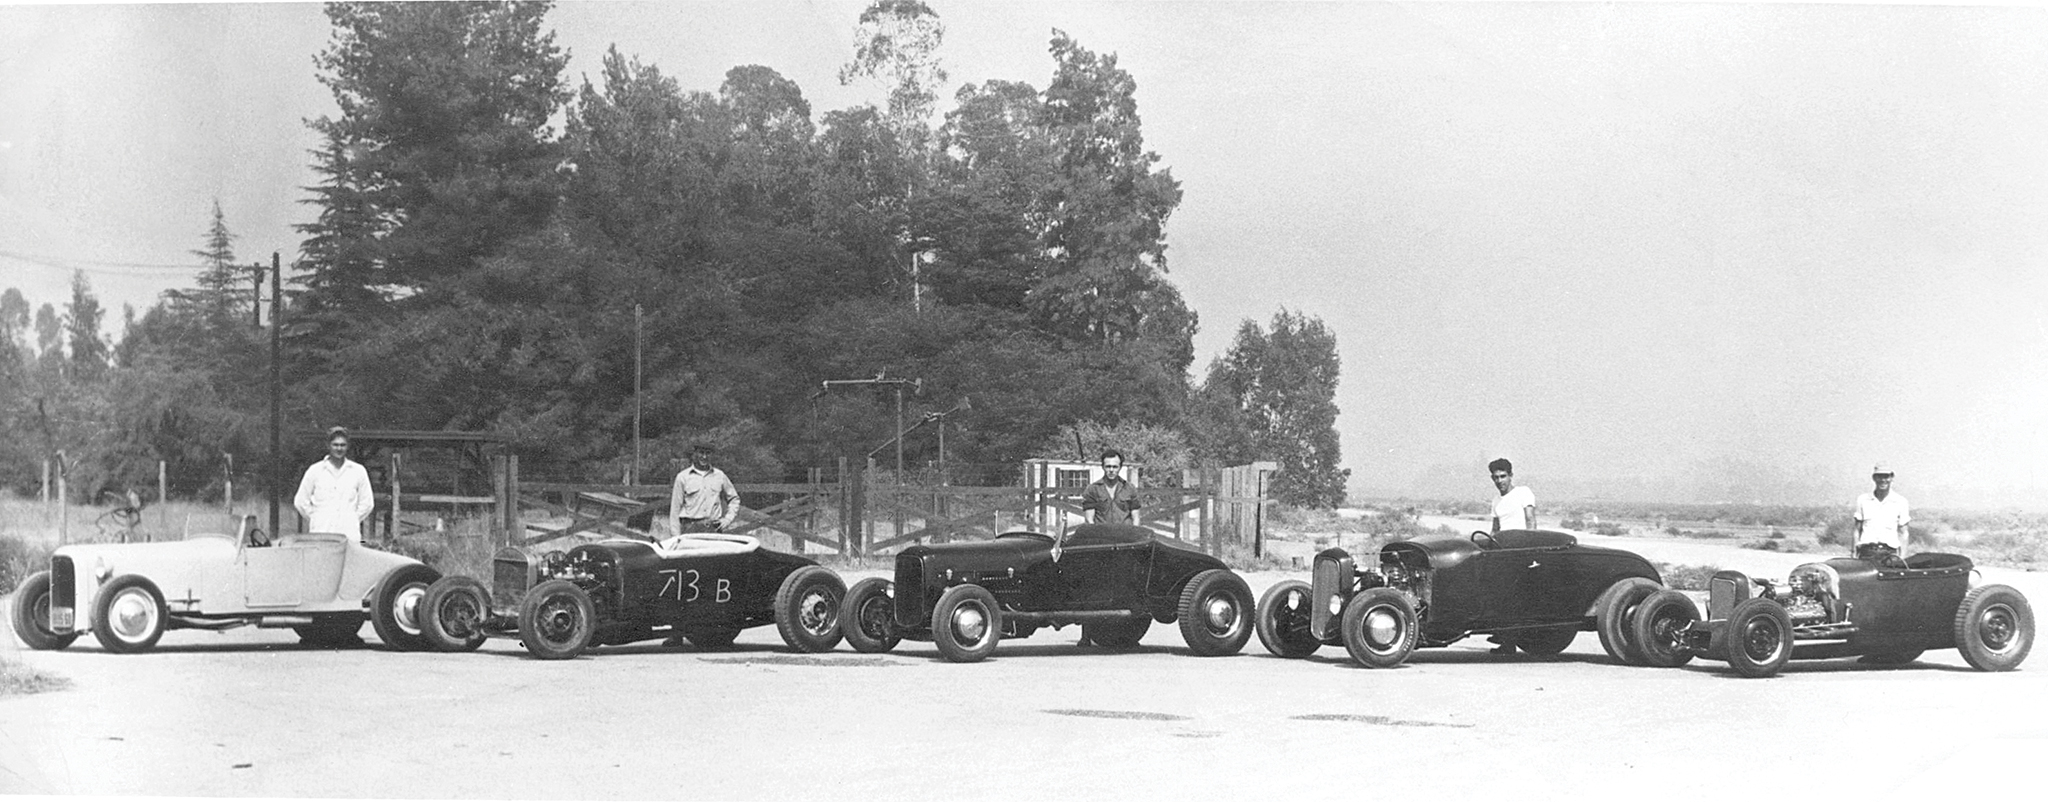 Harold was among the original members of the Outriders car club, several of whom appear in this photo from 1952 or '53. (Harold and his A are second from right.) We'd love to hear from anyone who can identify other club members in the photo.